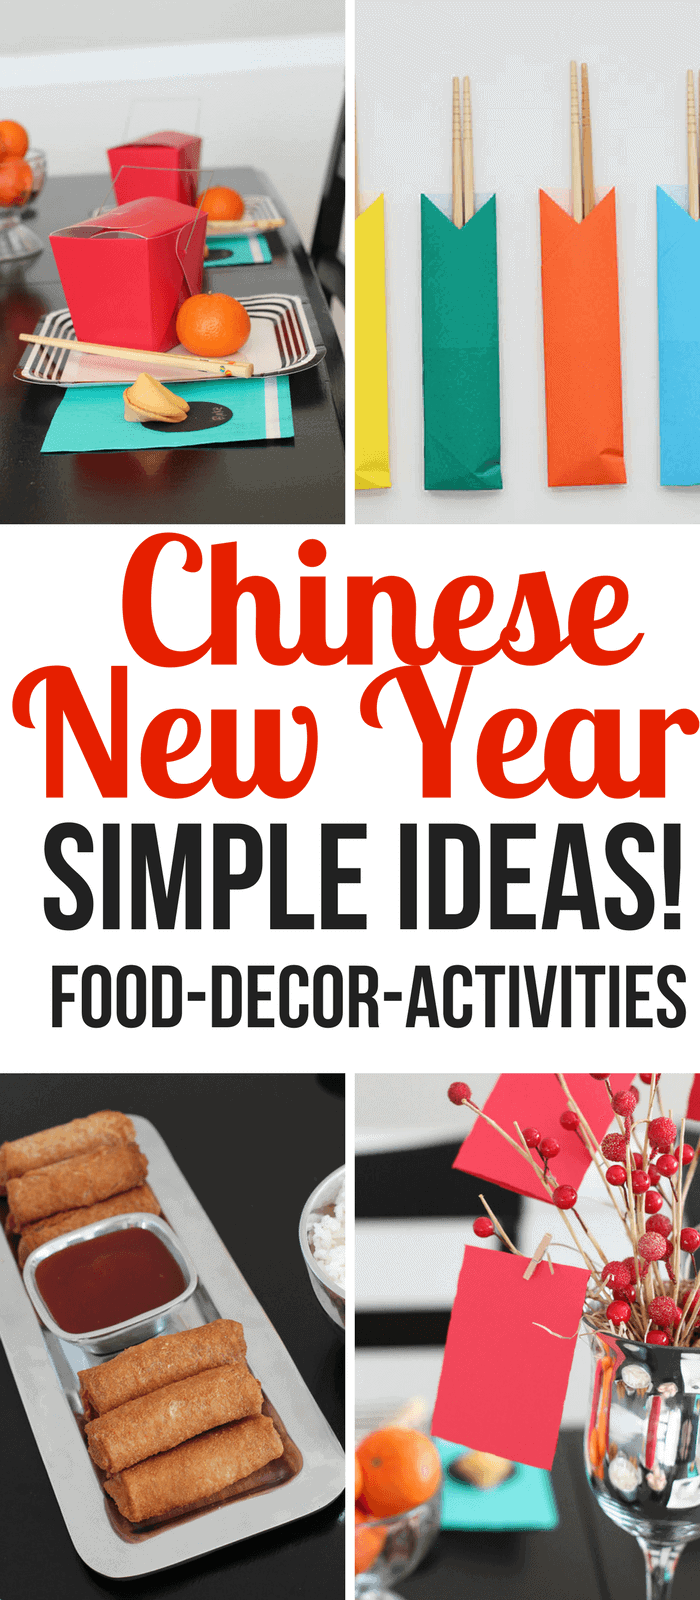 Chinese-New-Year-Ideas